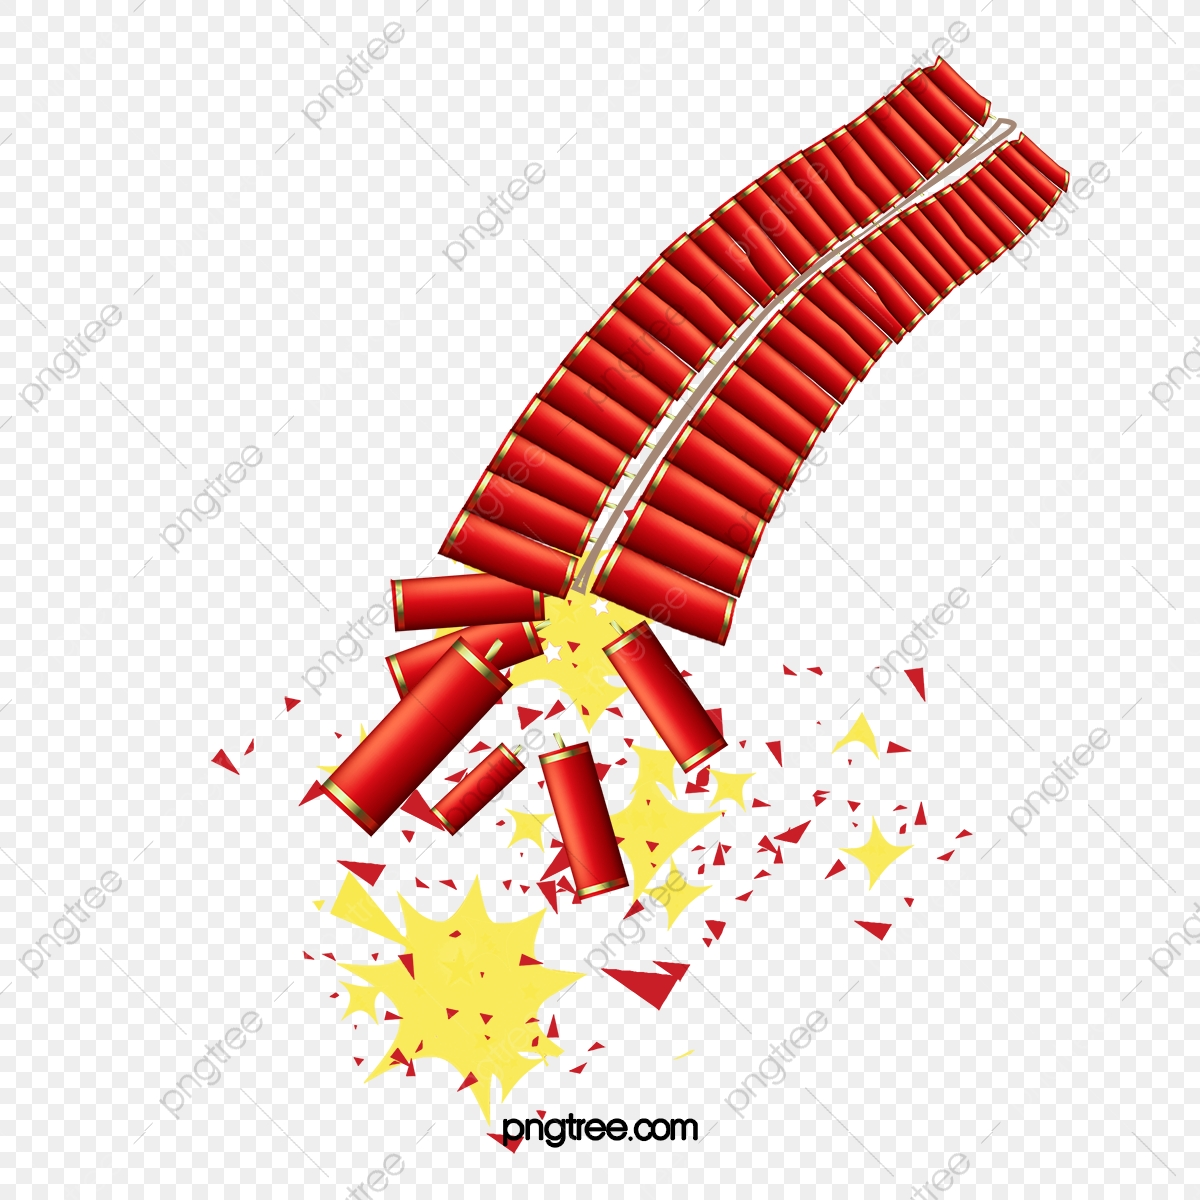 Firecracker clipart firecracker chinese. Firecrackers spring new year